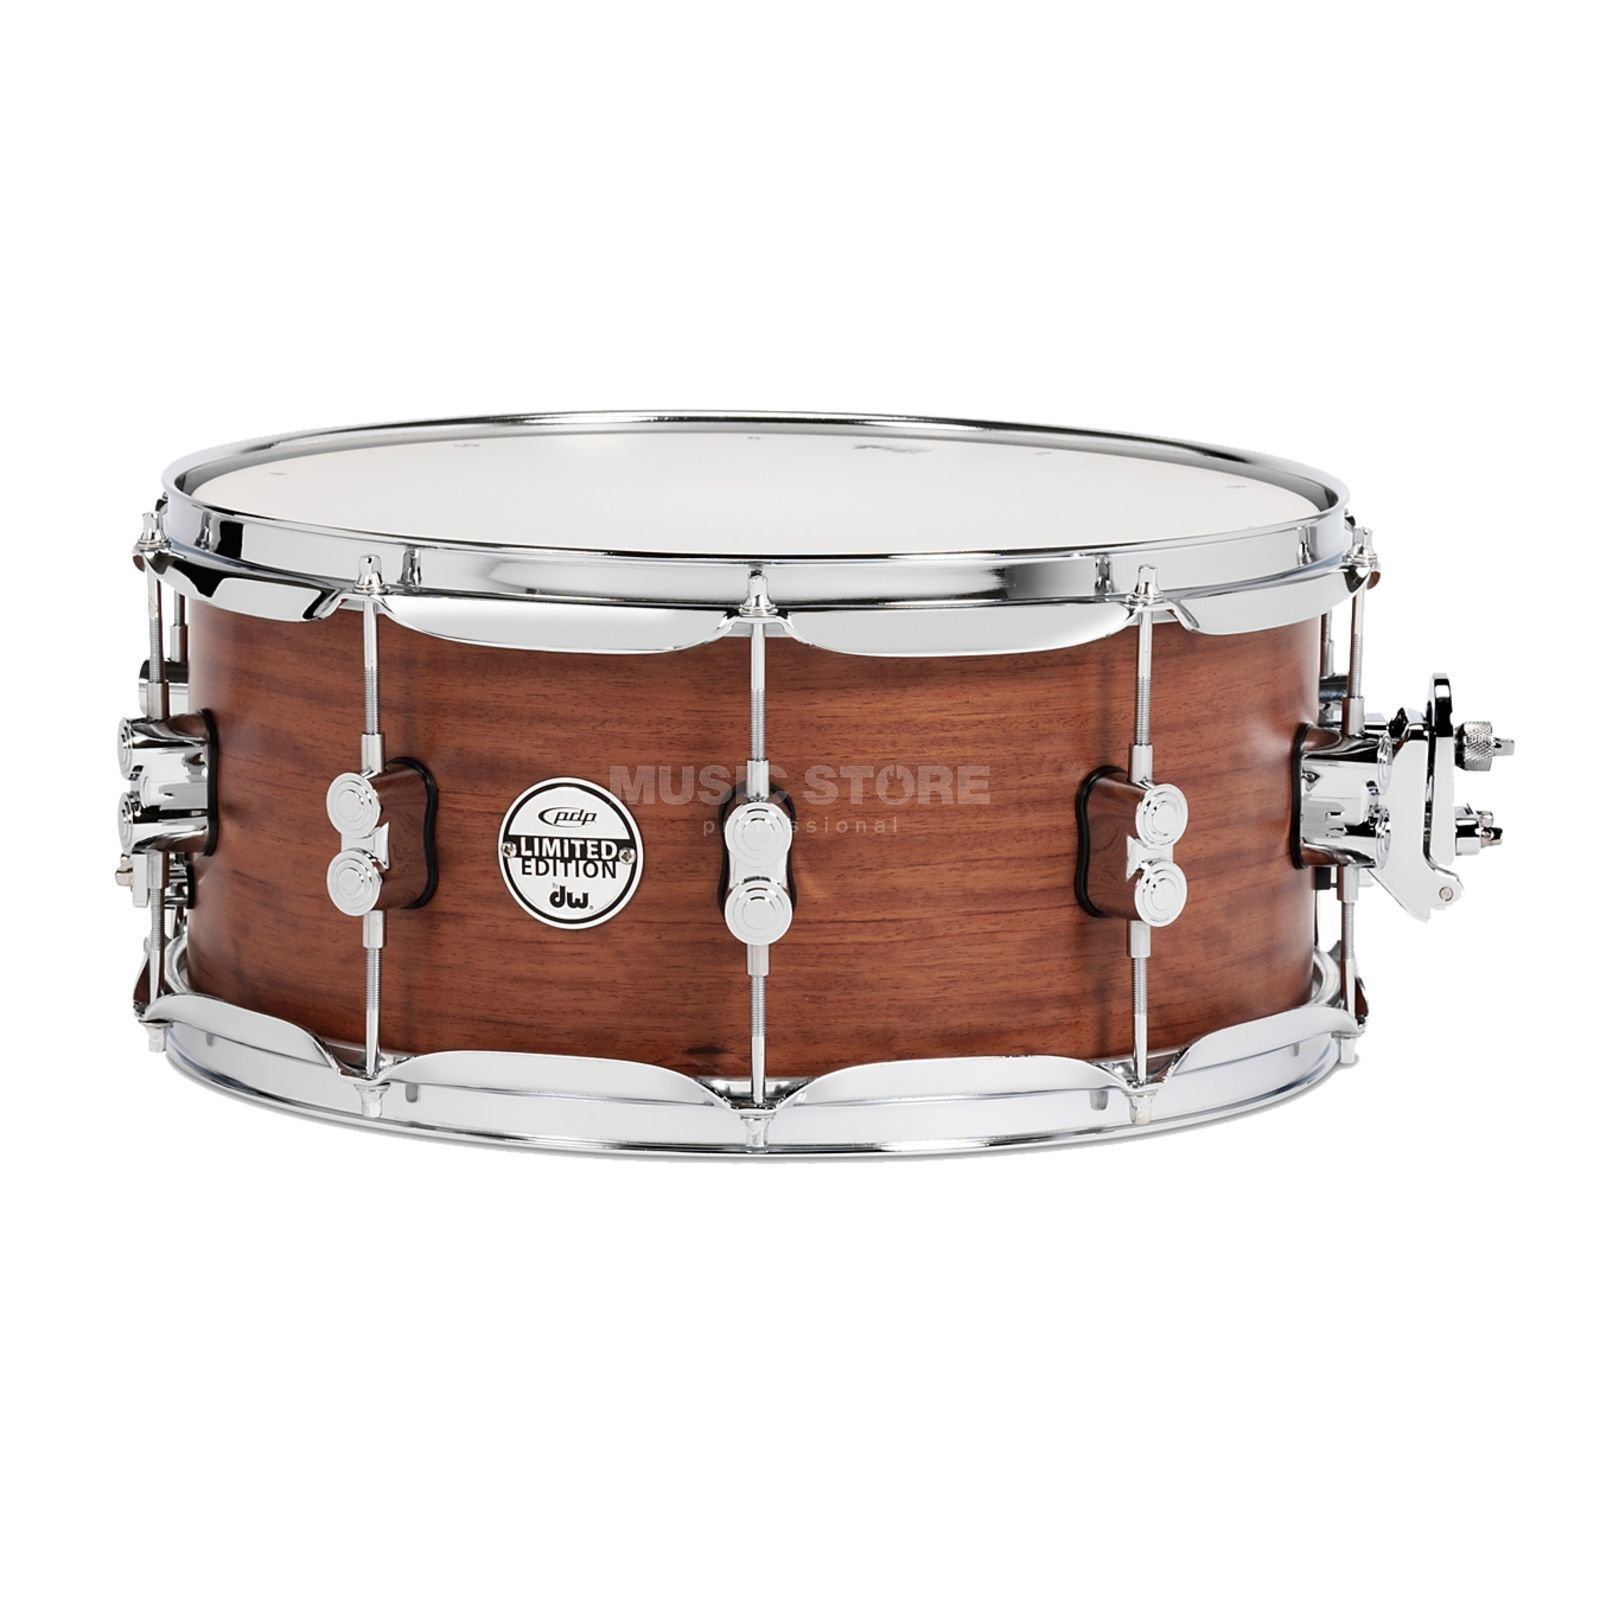 "Drum Workshop PDP Satin Oil Snare 14""x6,5"", Bubinga/Maple/Bubinga Produktbild"